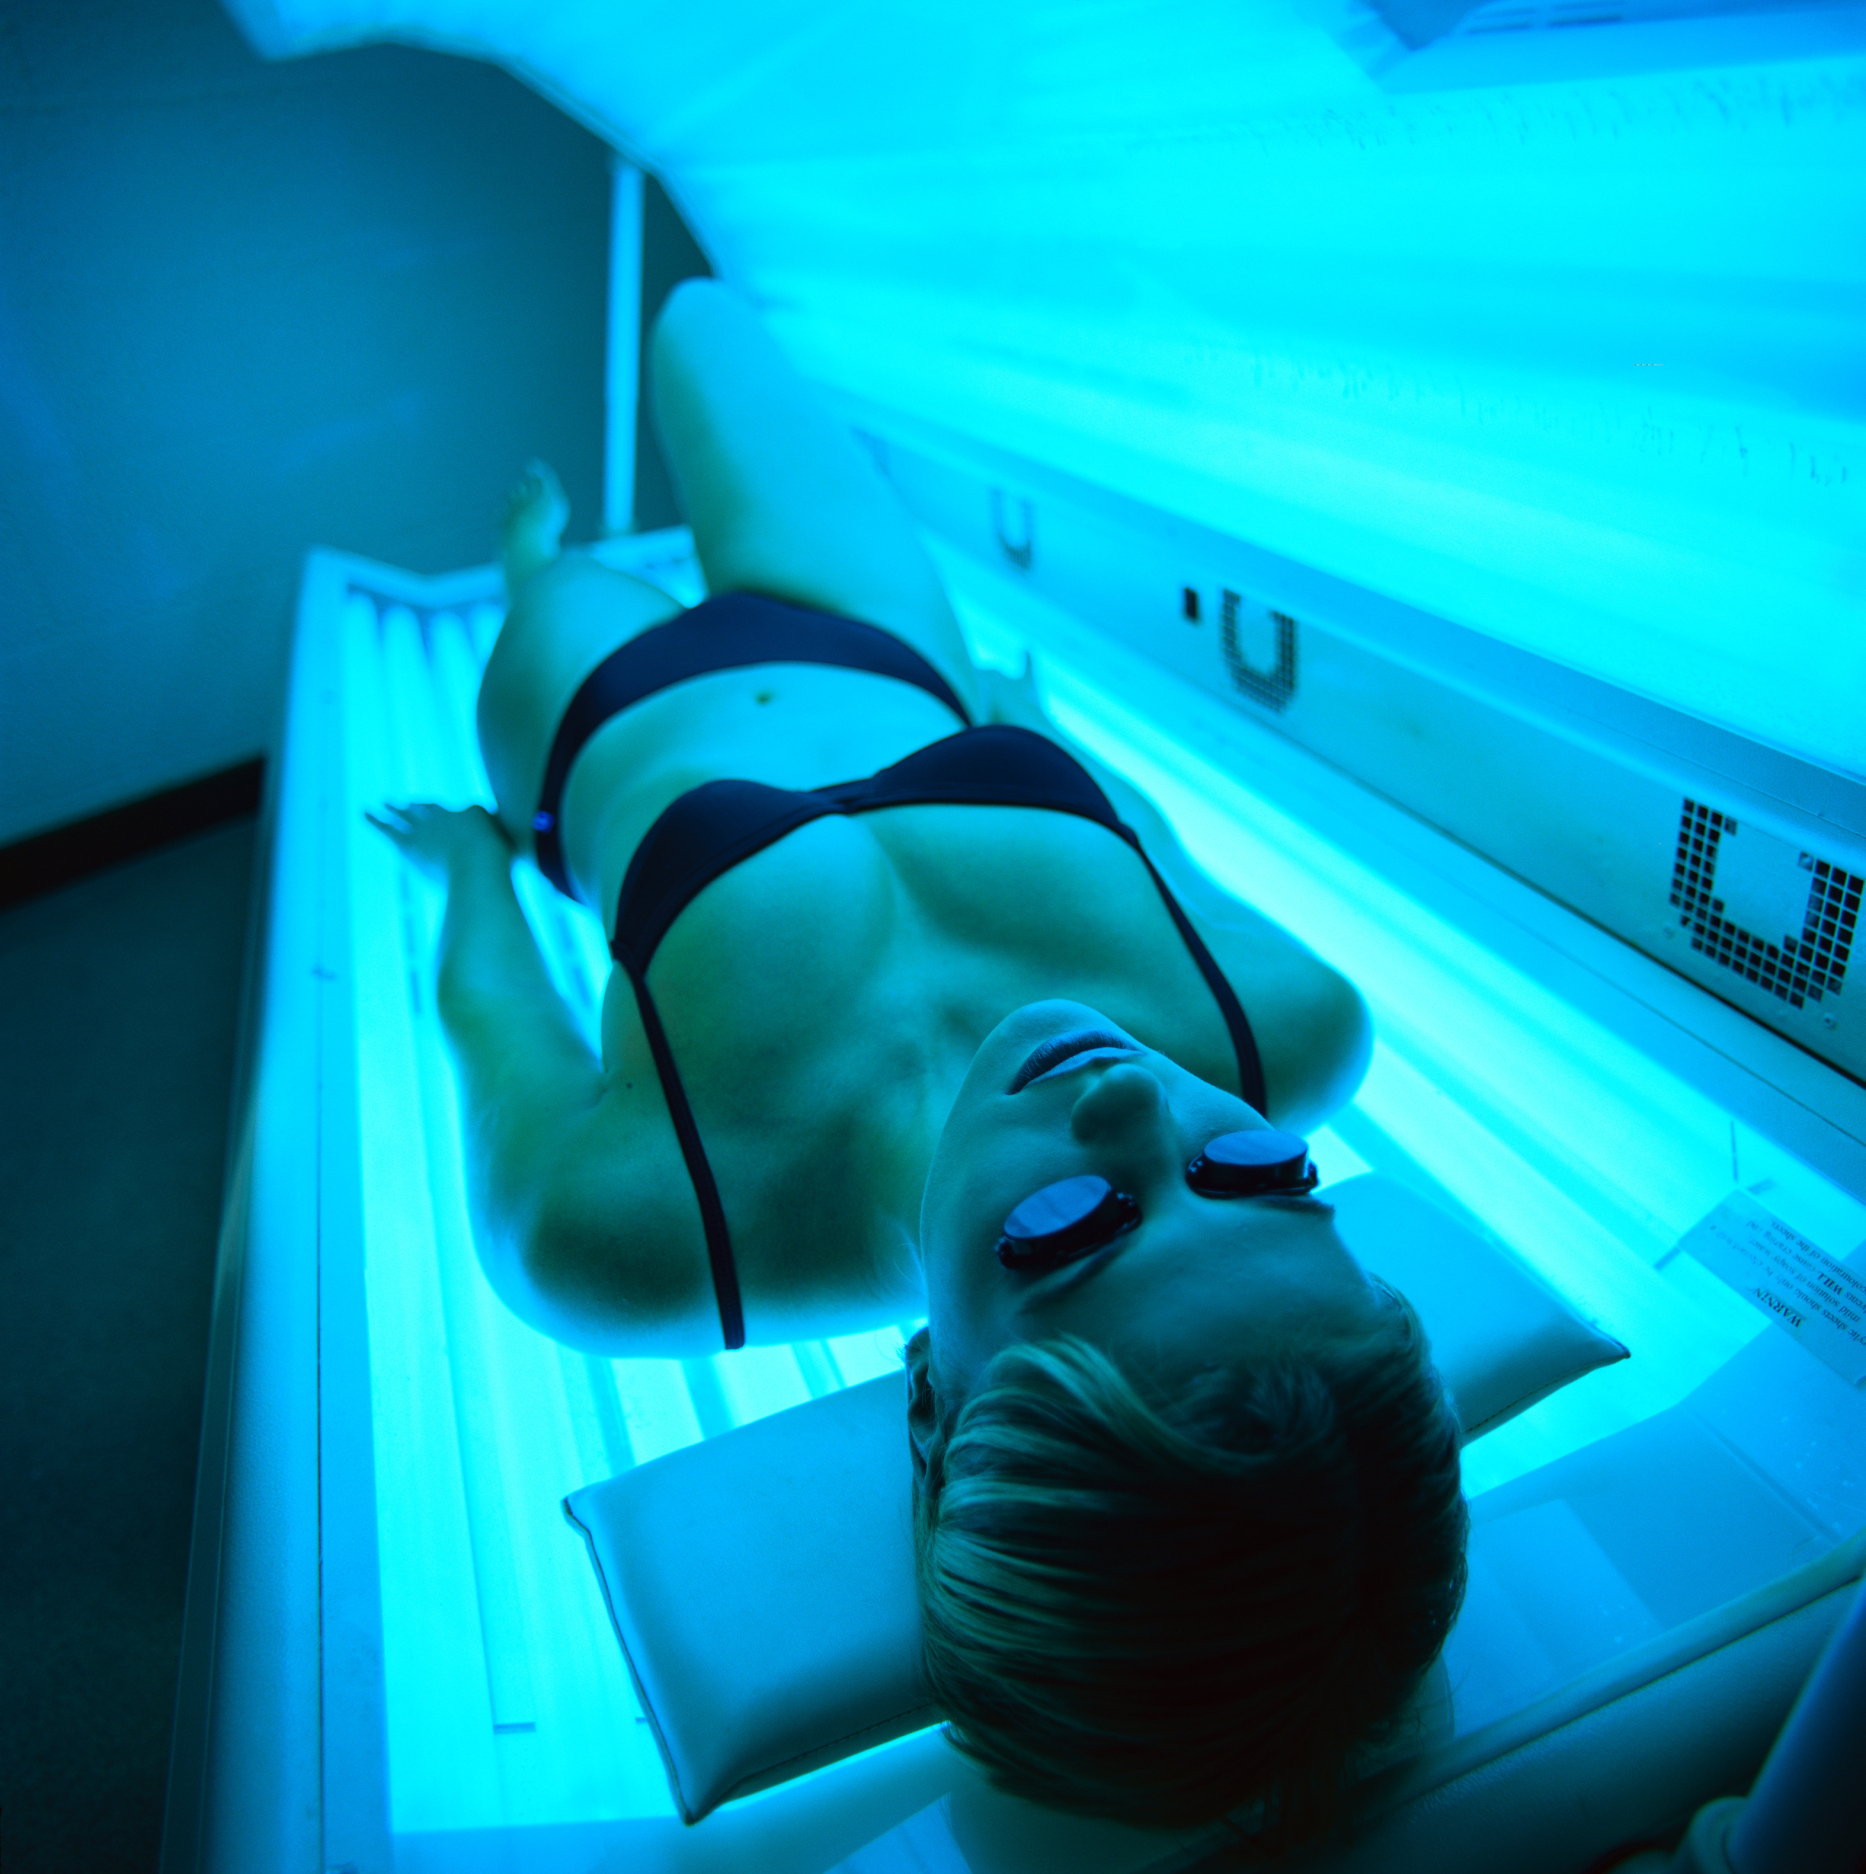 how to care for skin after tanning | livestrong